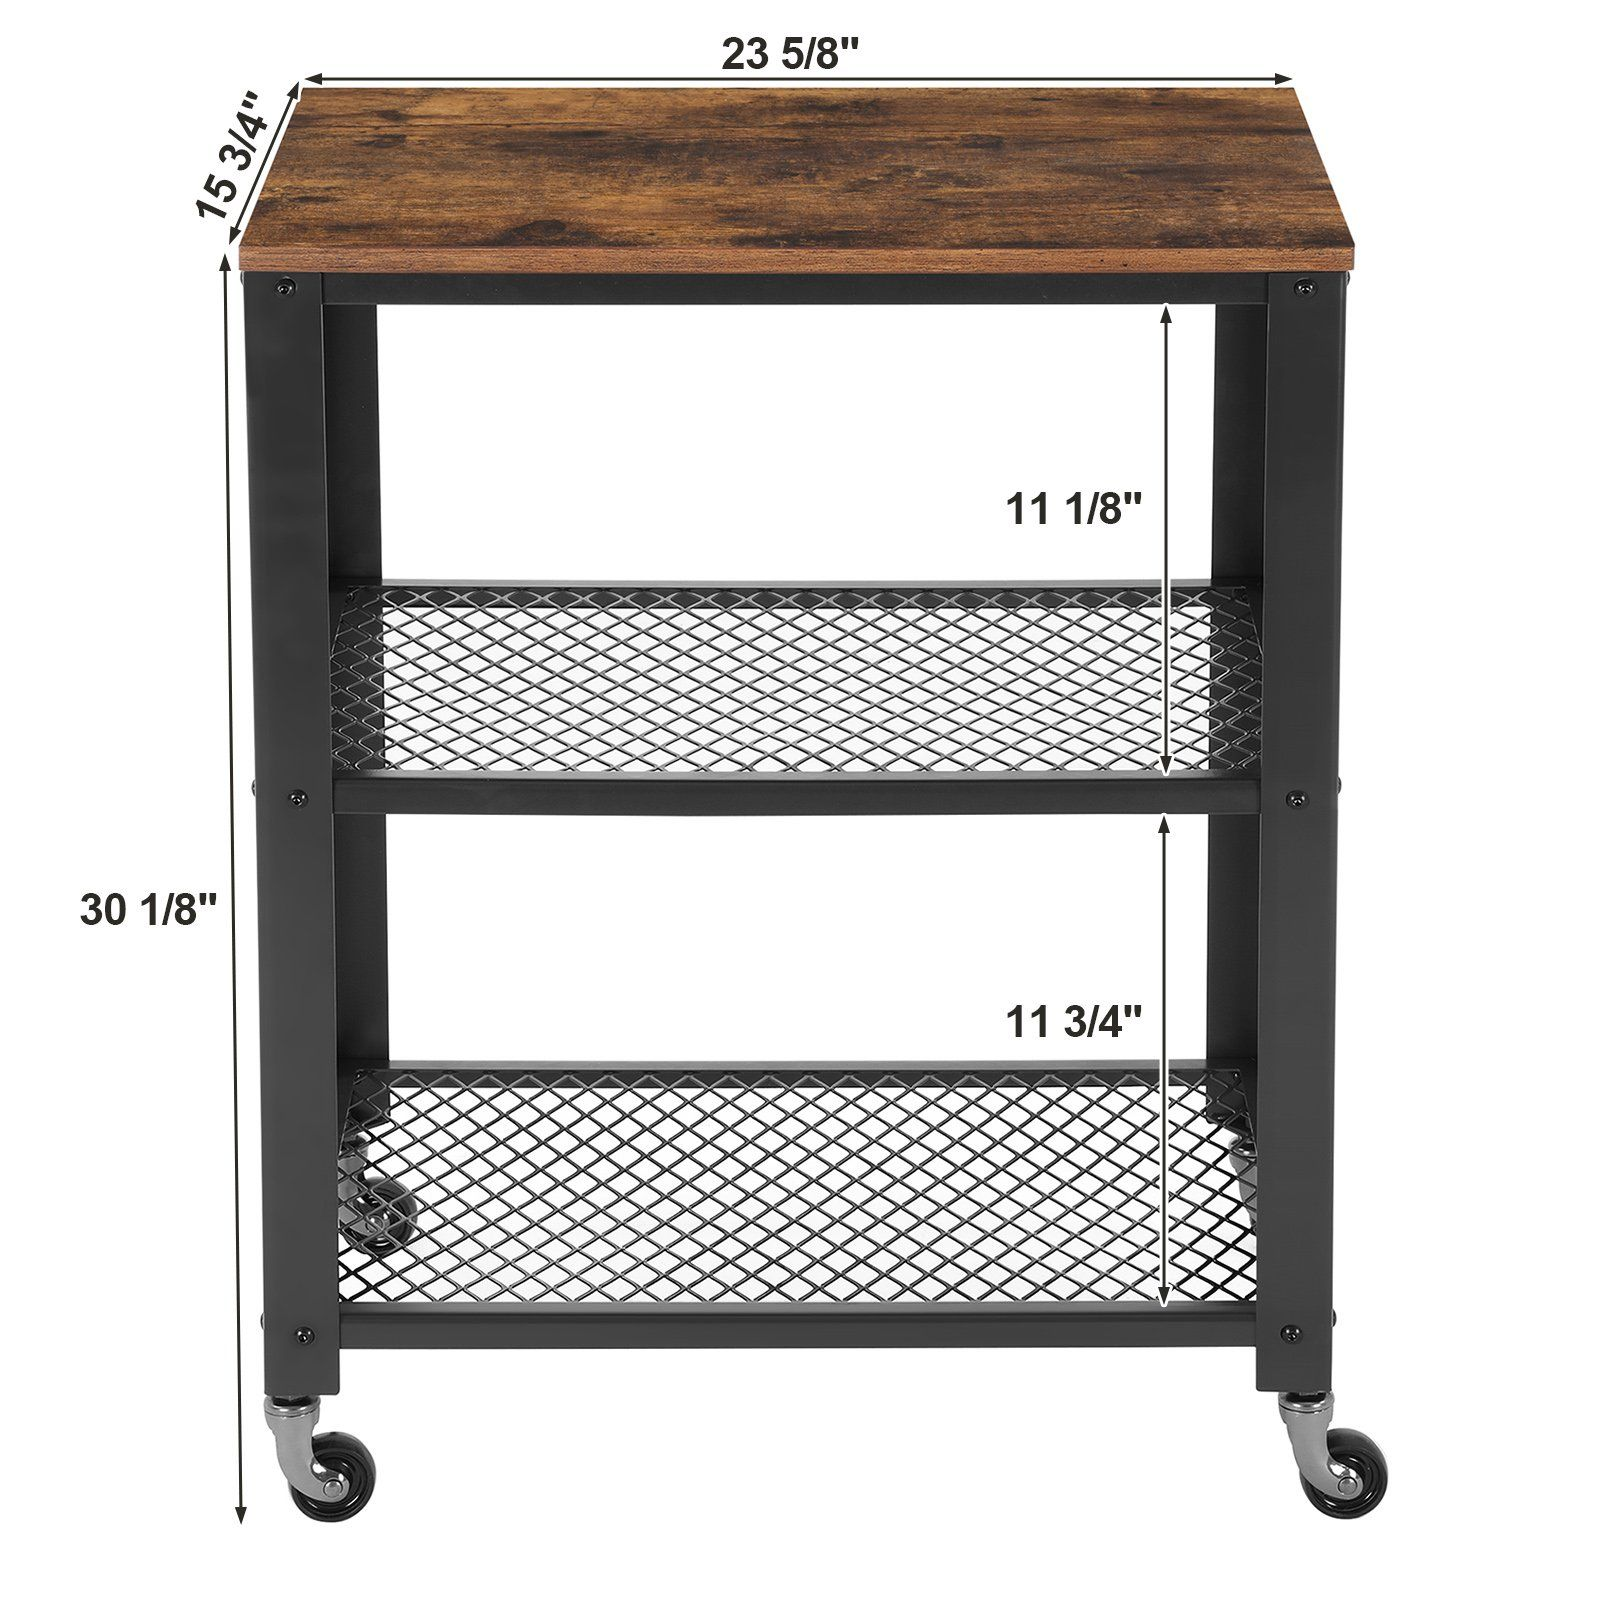 Songmics Rustic 3tier Serving Cart And Rolling Utility Storage Organizer For Kitchen And Living Room Ulrc78 Kitchen Utility Cart Kitchen Cart Kitchen Utilities